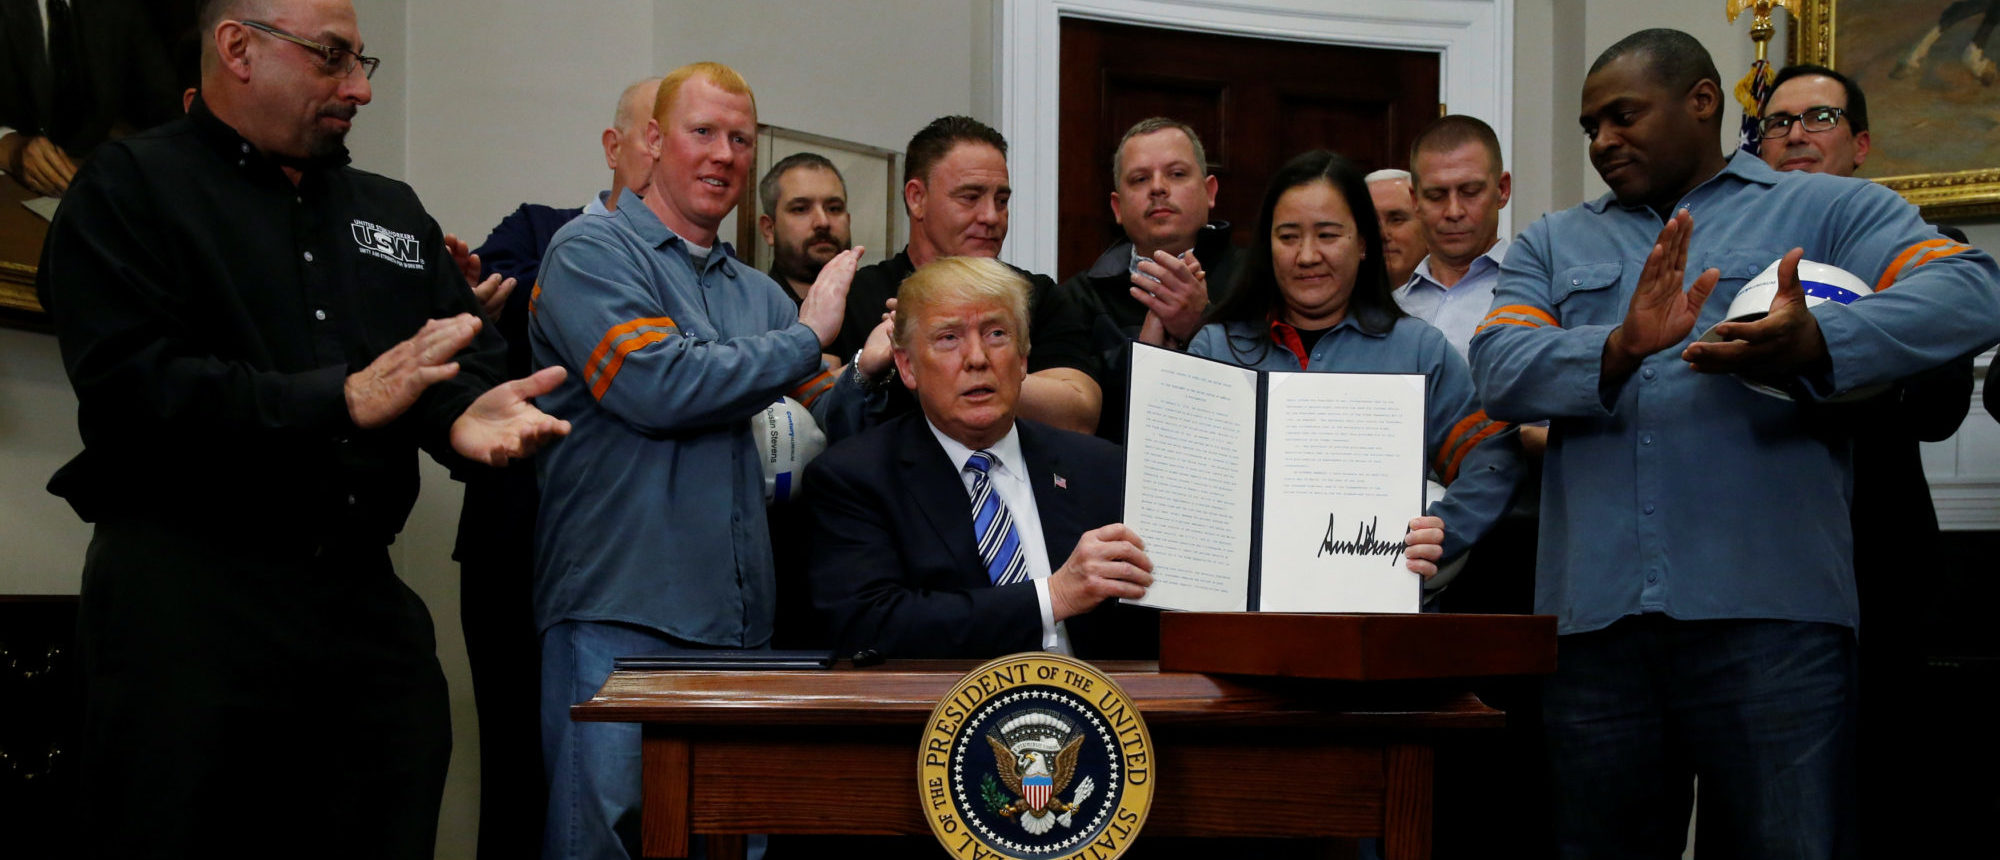 President Donald Trump is after signing a proclamation to establish tariffs on imports of steel and aluminum at the White House in Washington, March 8, 2018. REUTERS/Leah Millis